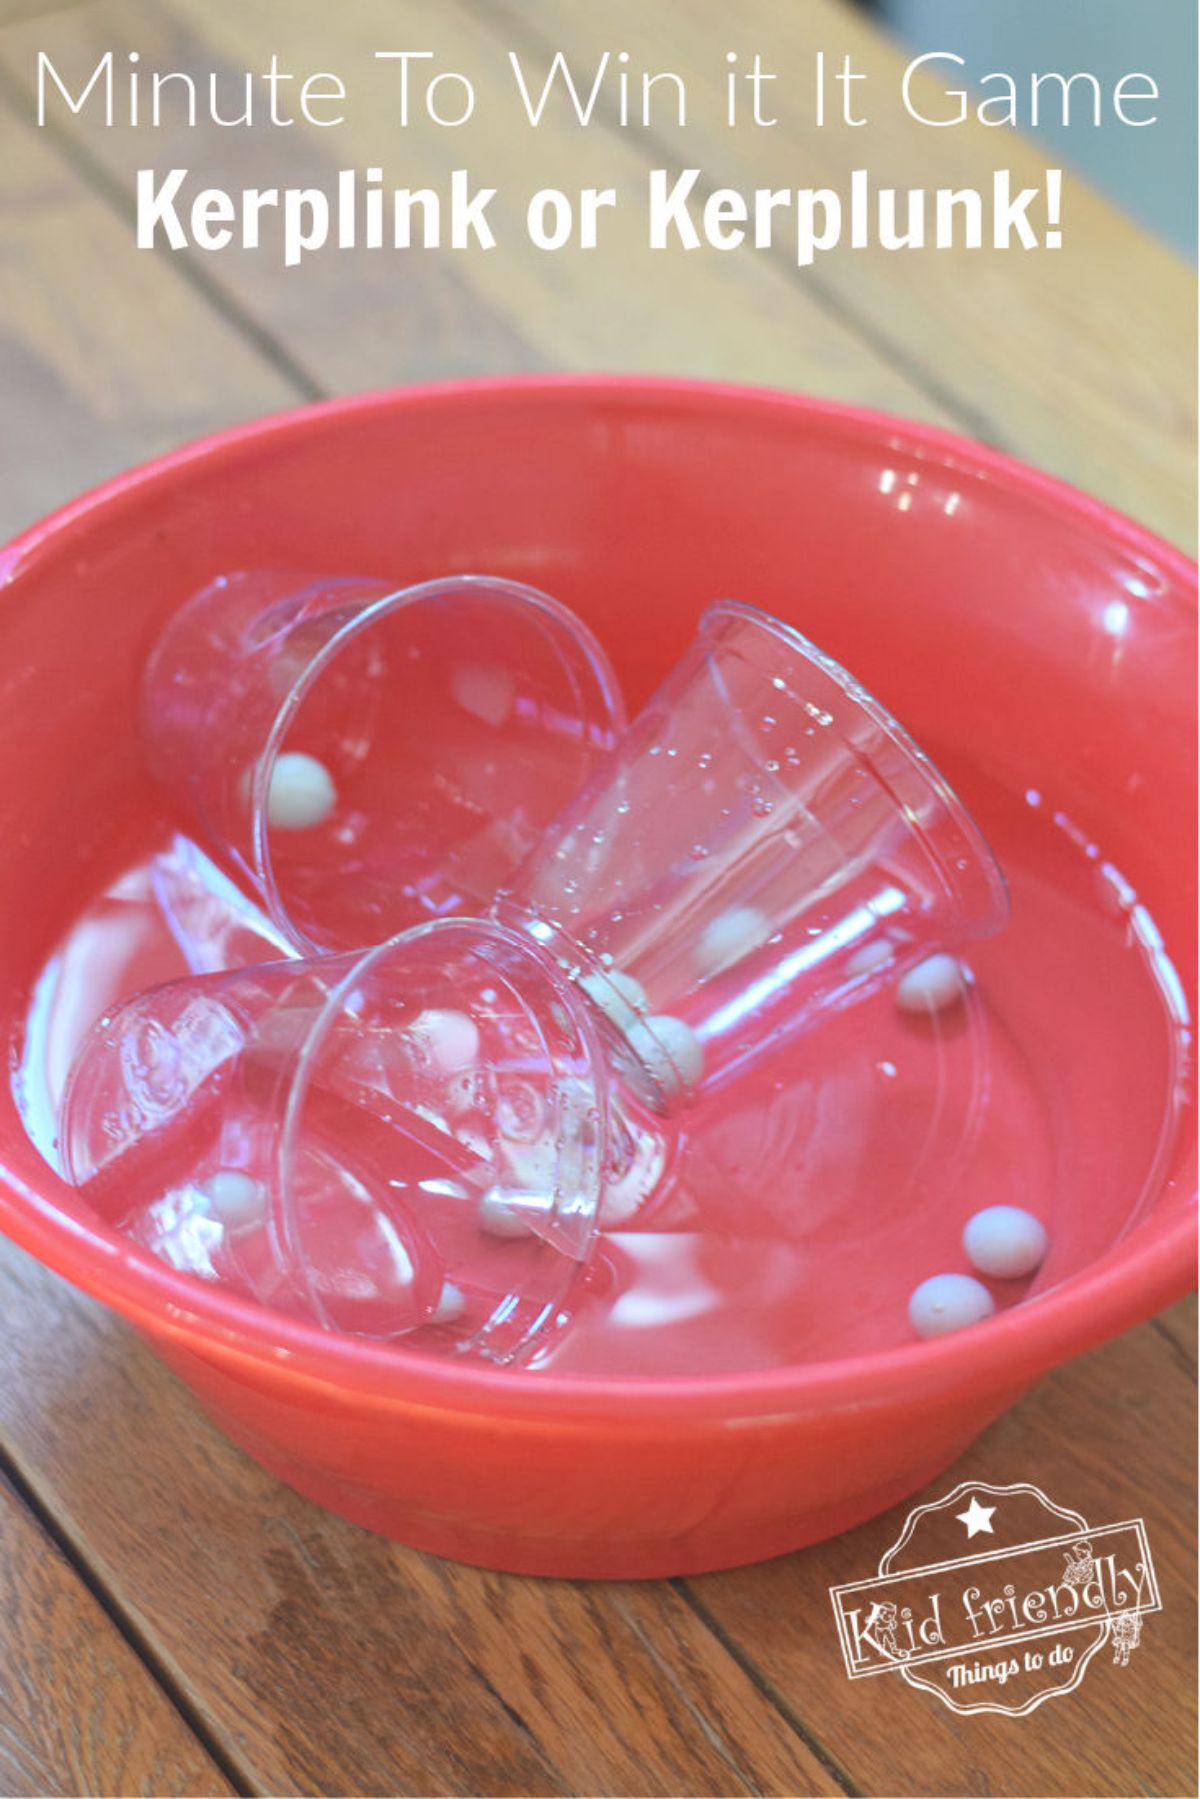 """the text reads """"Minute to win it game kerplink or kerplunk!"""". The image is of a red bowl on a wooden table. 3 clear plastic cups are in teh bowl, floating in water. Several marbles are in the bottom of the bowl"""